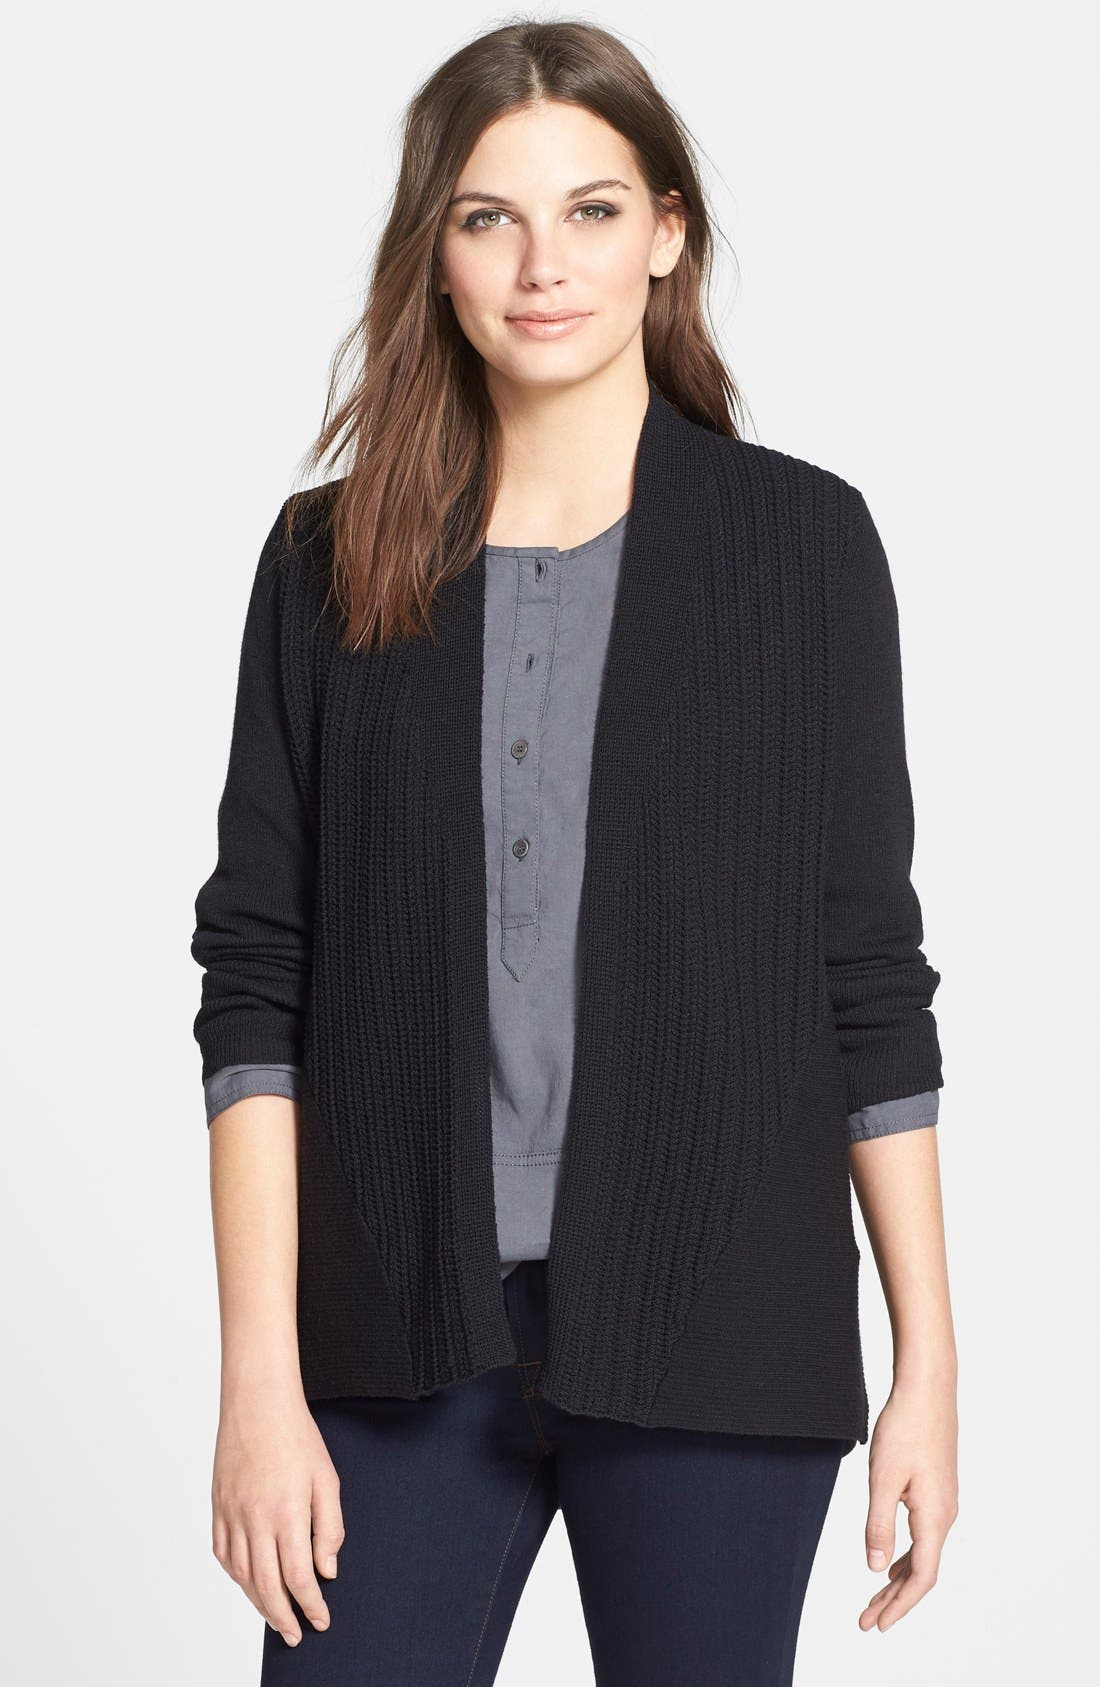 Alternate Image 1 Selected - Eileen Fisher Textured Wool Cardigan (Petite)